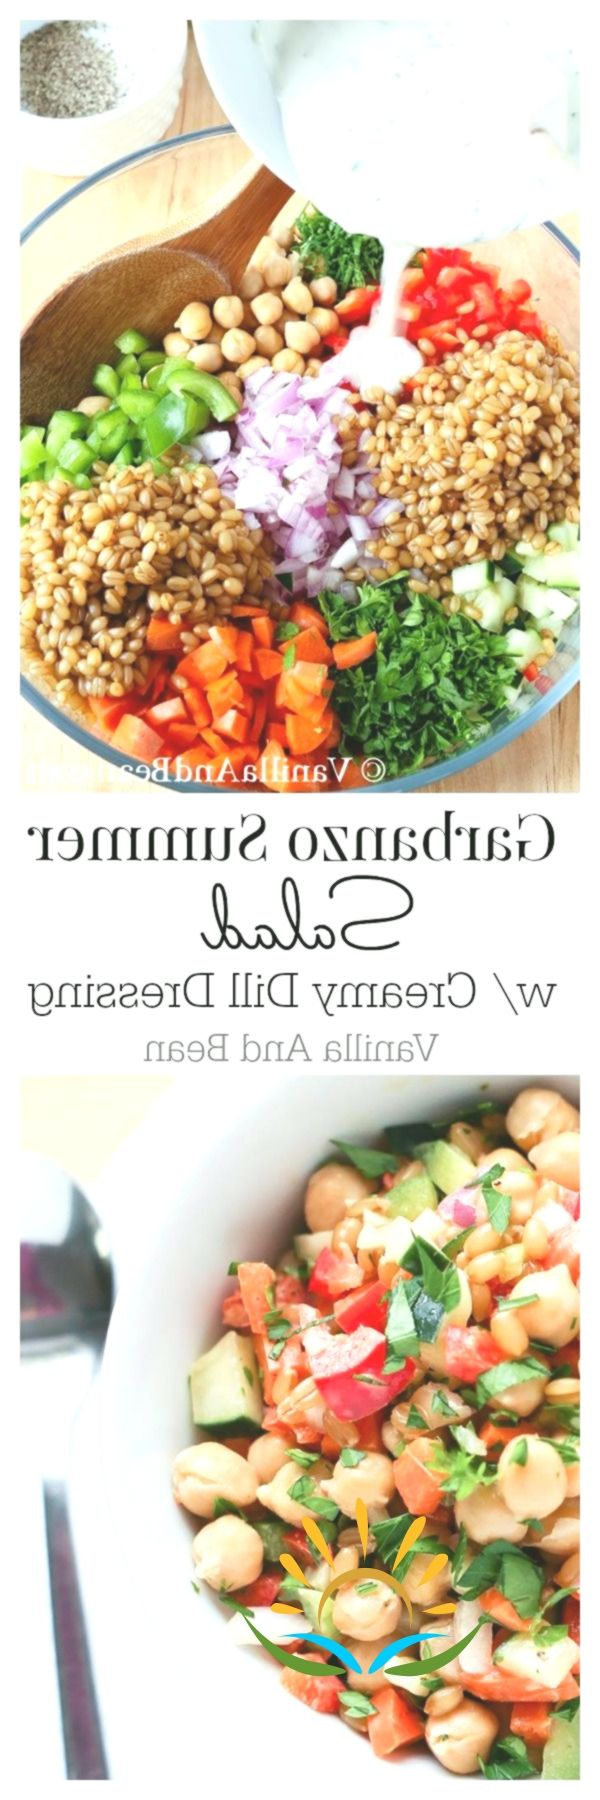 Garbanzo (Chickpea) Summer Salad with Creamy Dill Dressing | Vanilla And ...